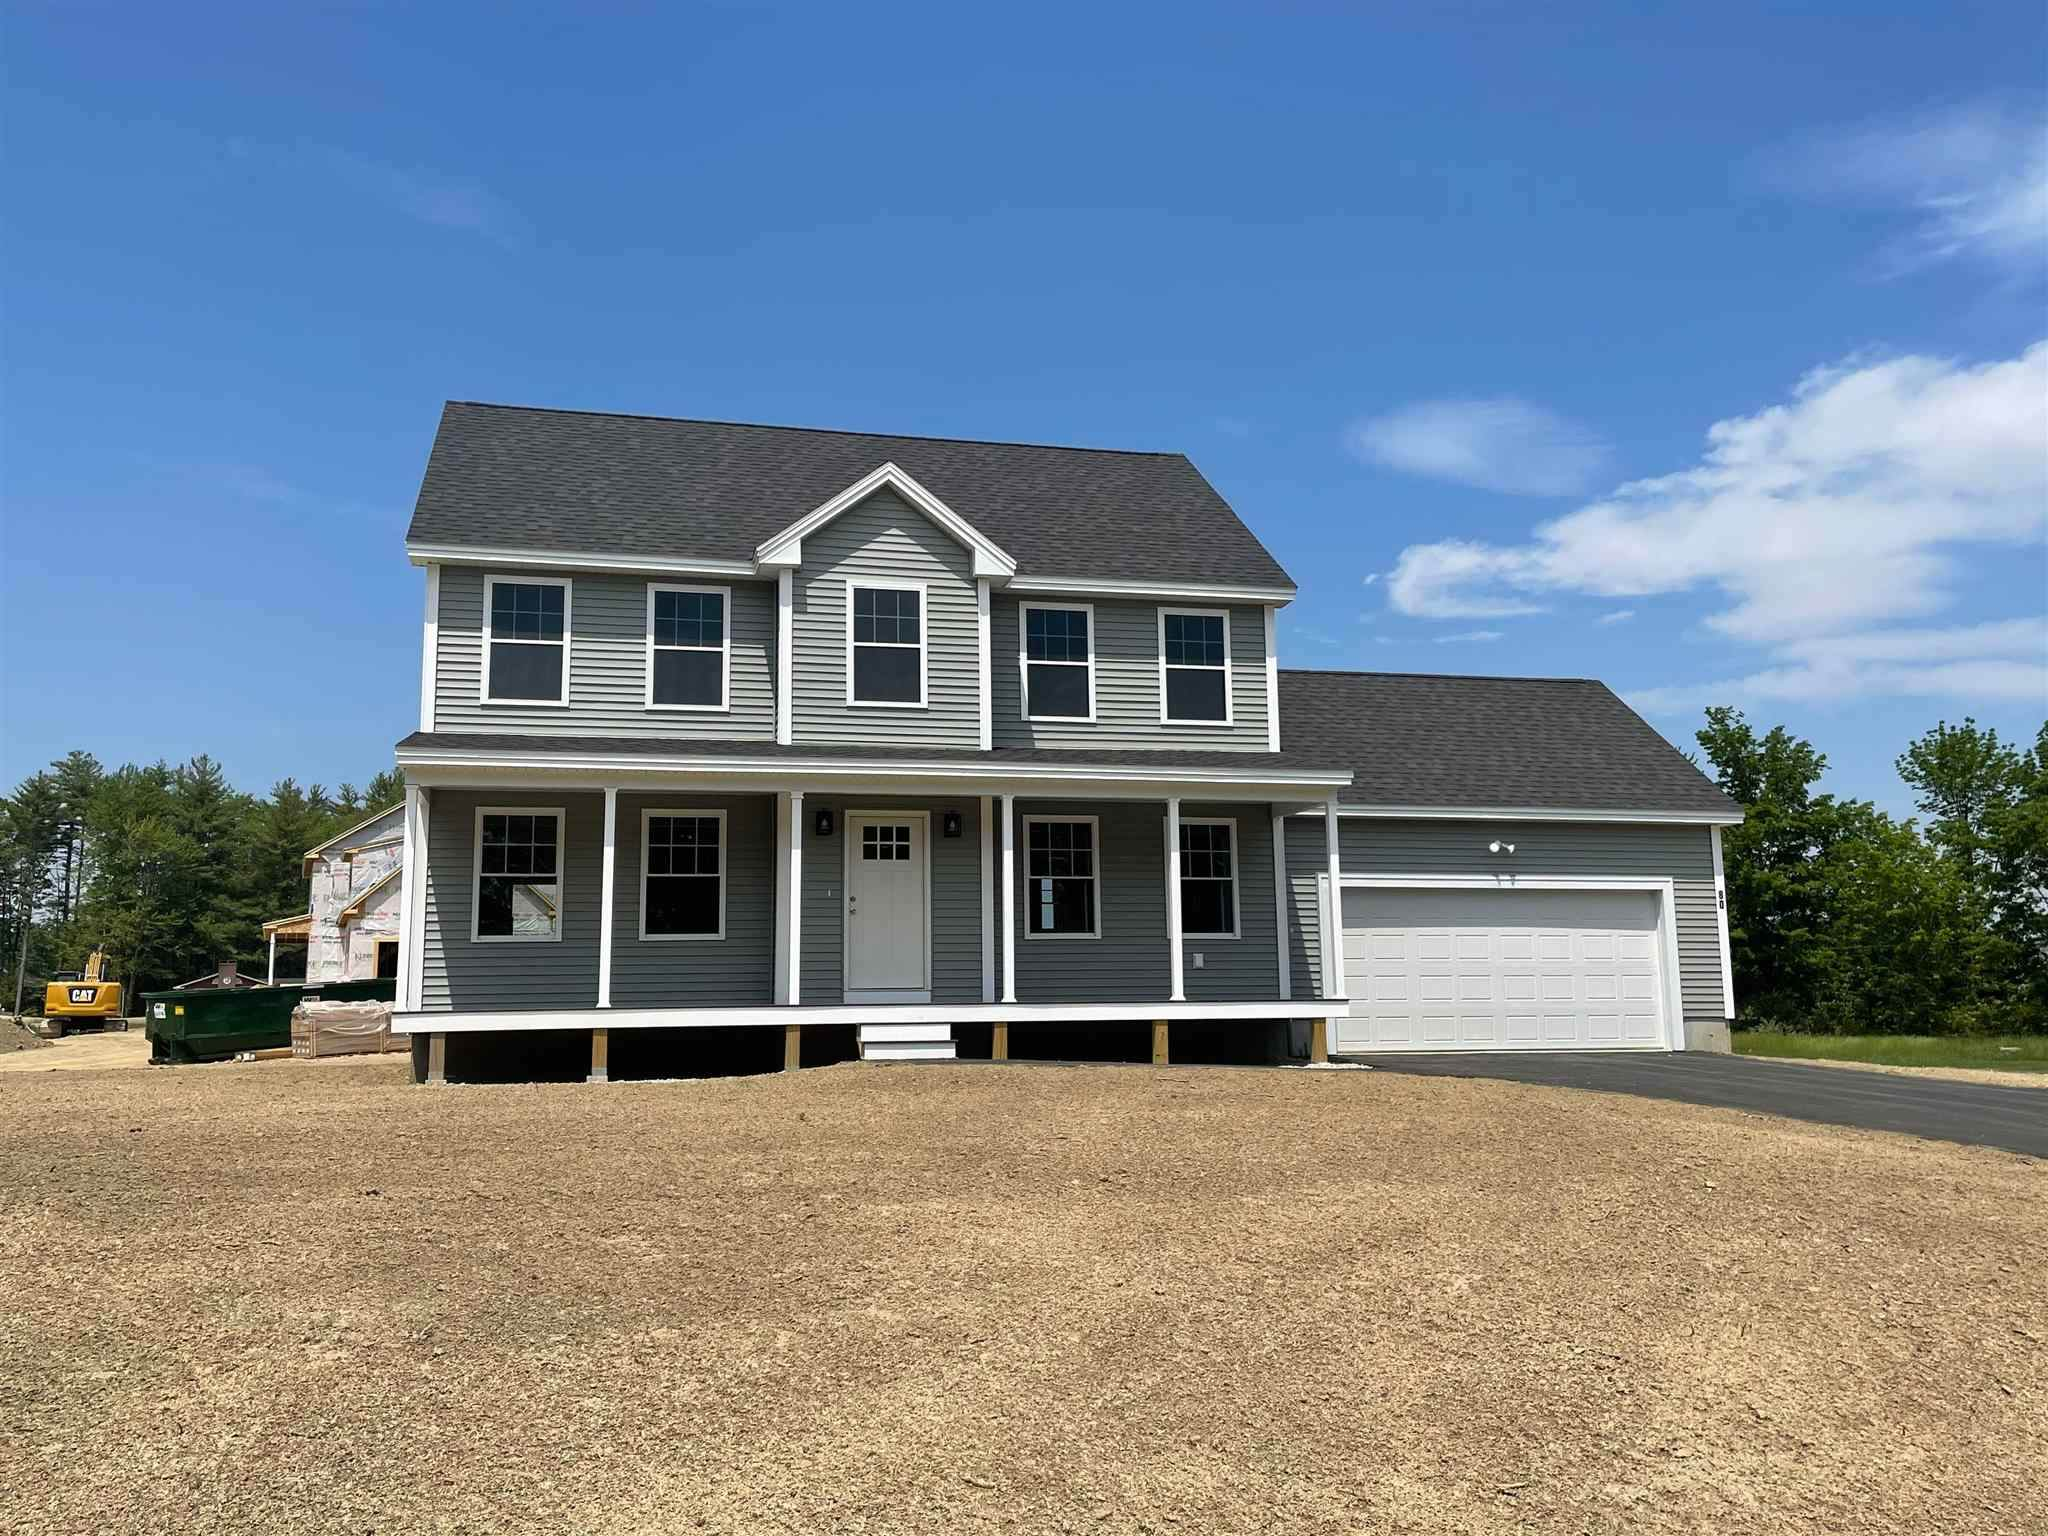 Lot 310-17 Meadow Court 310-17, Rochester, NH 03839 (MLS #4844286) :: Team Tringali